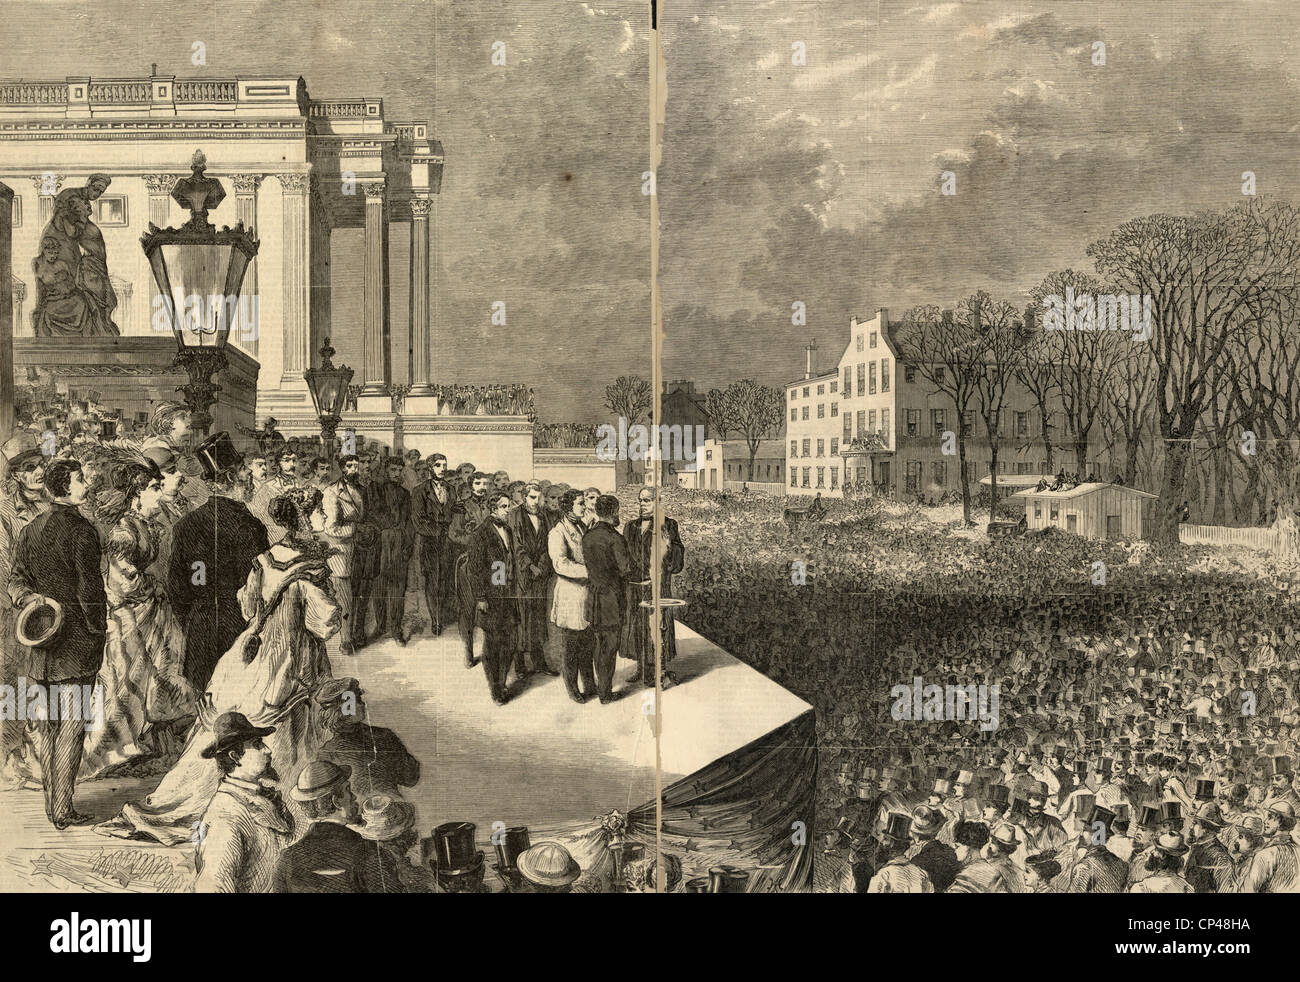 The inauguration of Ulysses S. Grant as president of the United States March 4th 1869 - Stock Image